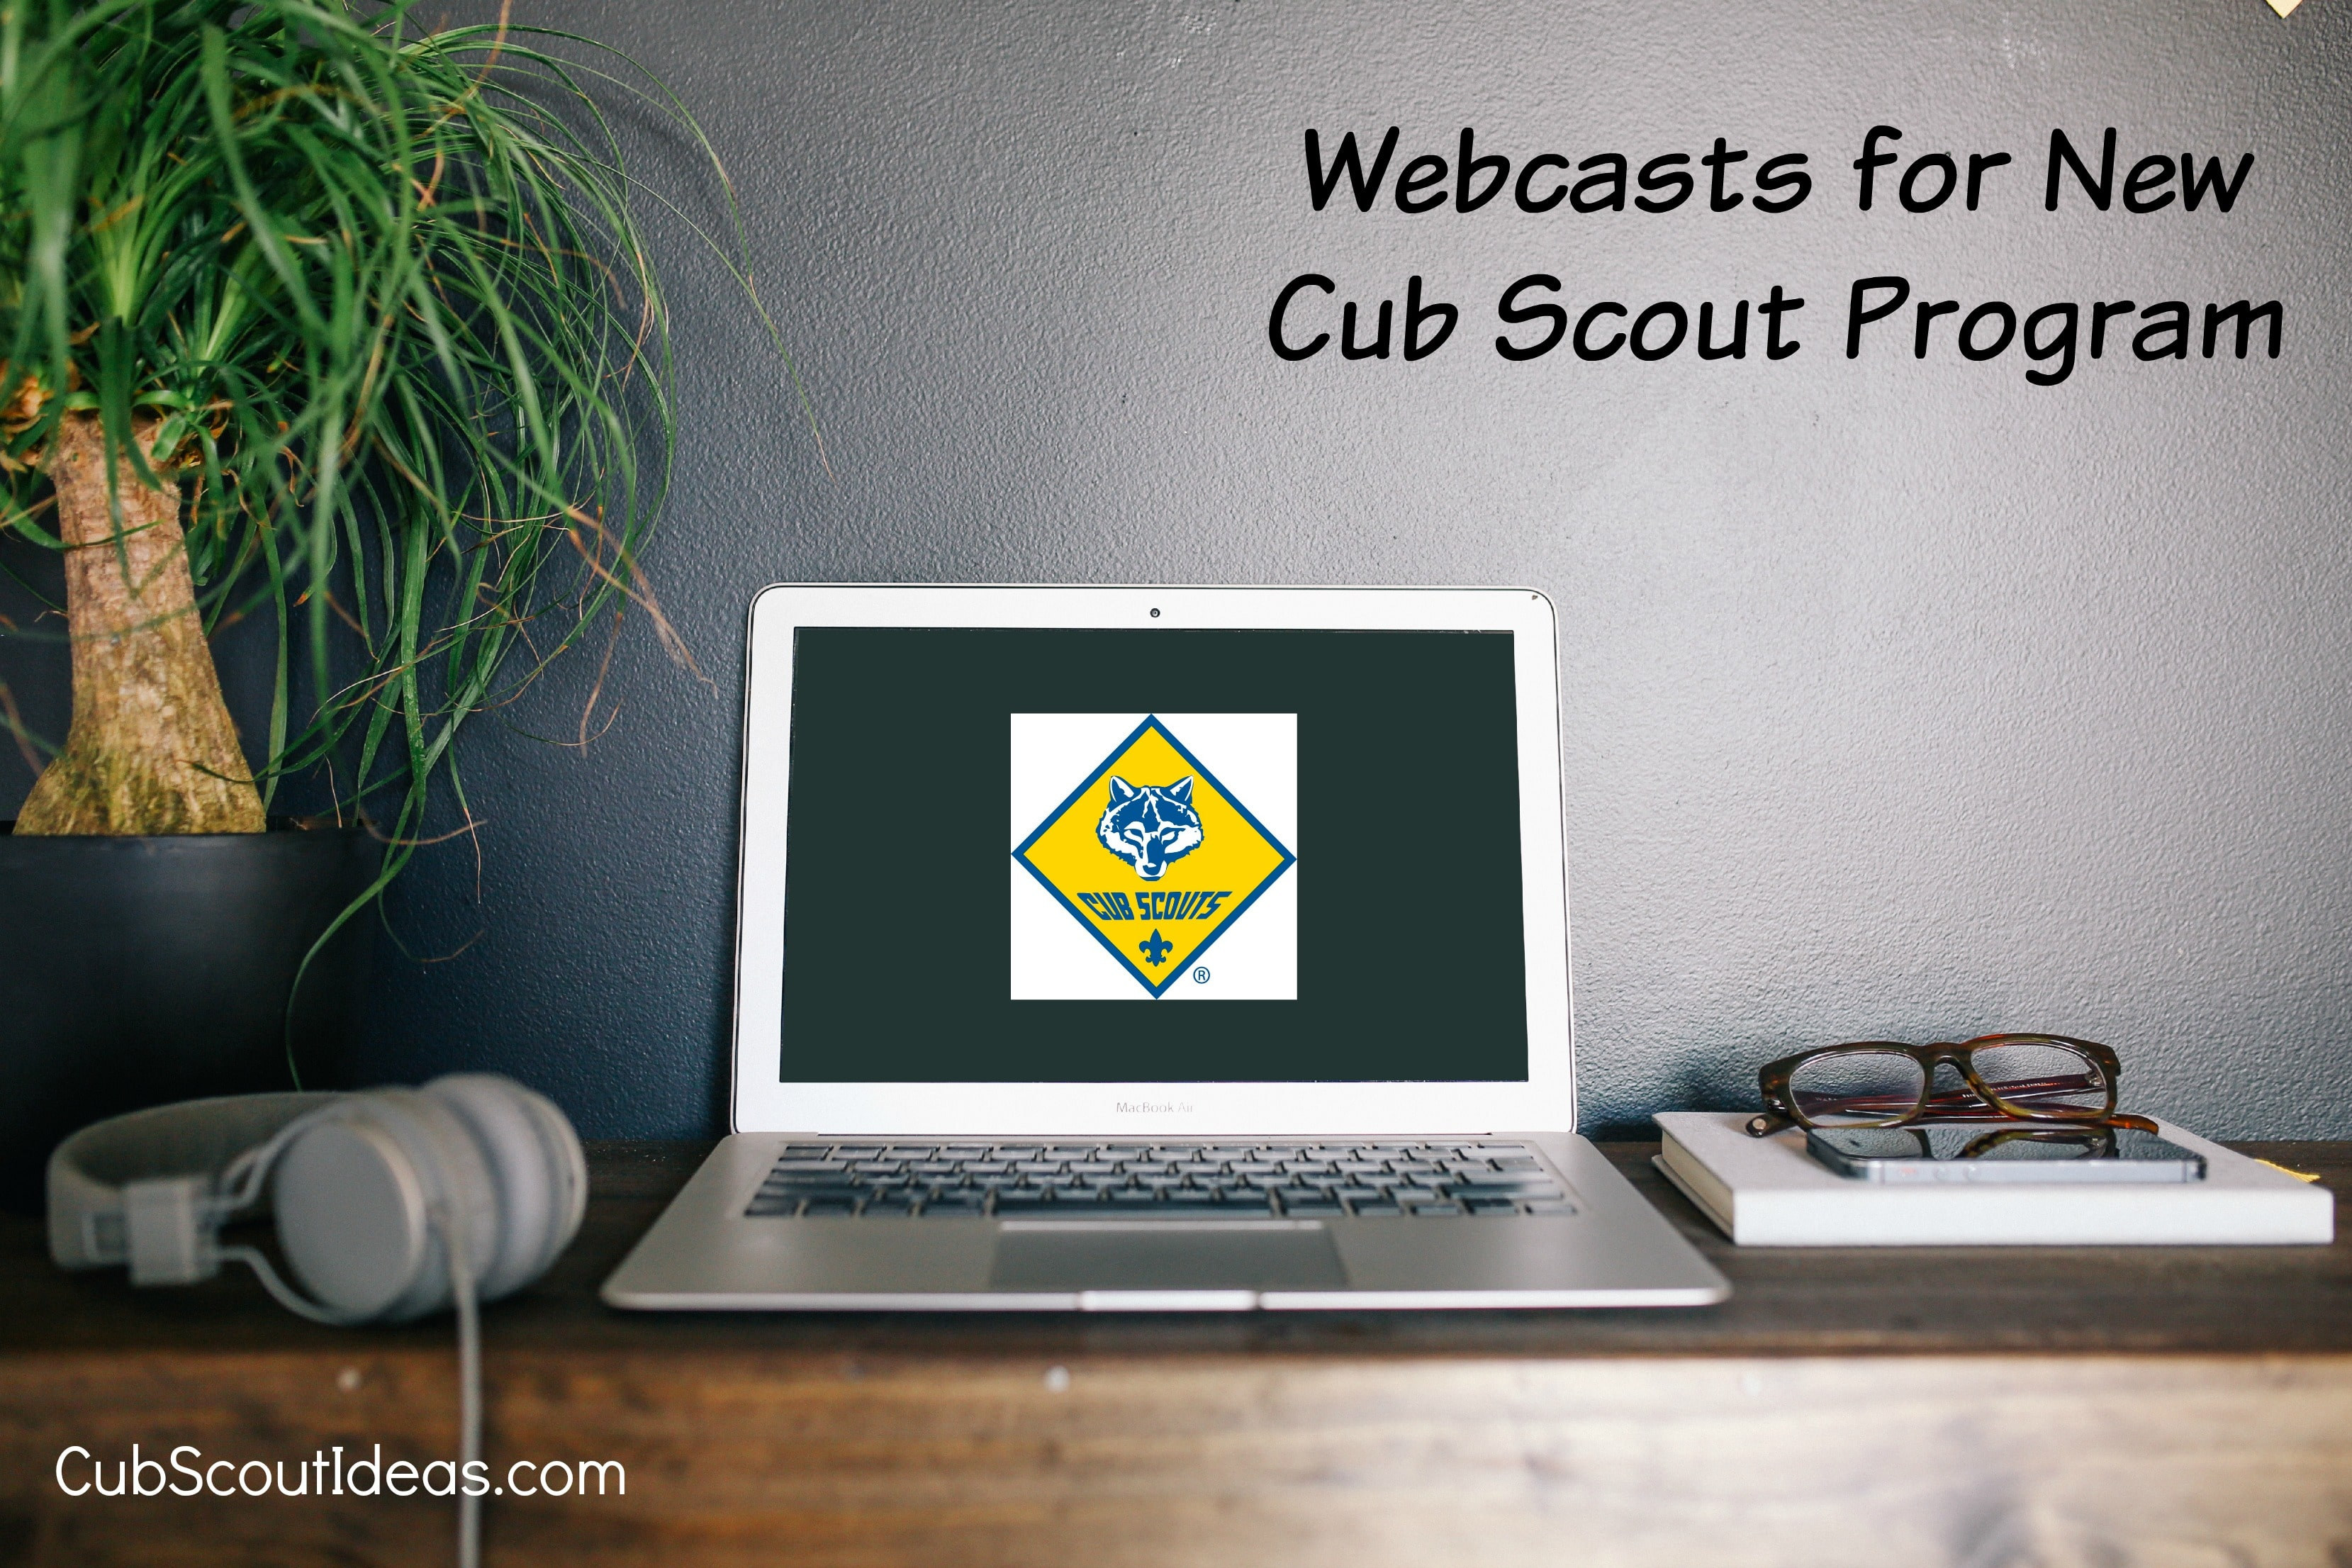 Webcasts for New Cub Scout Program